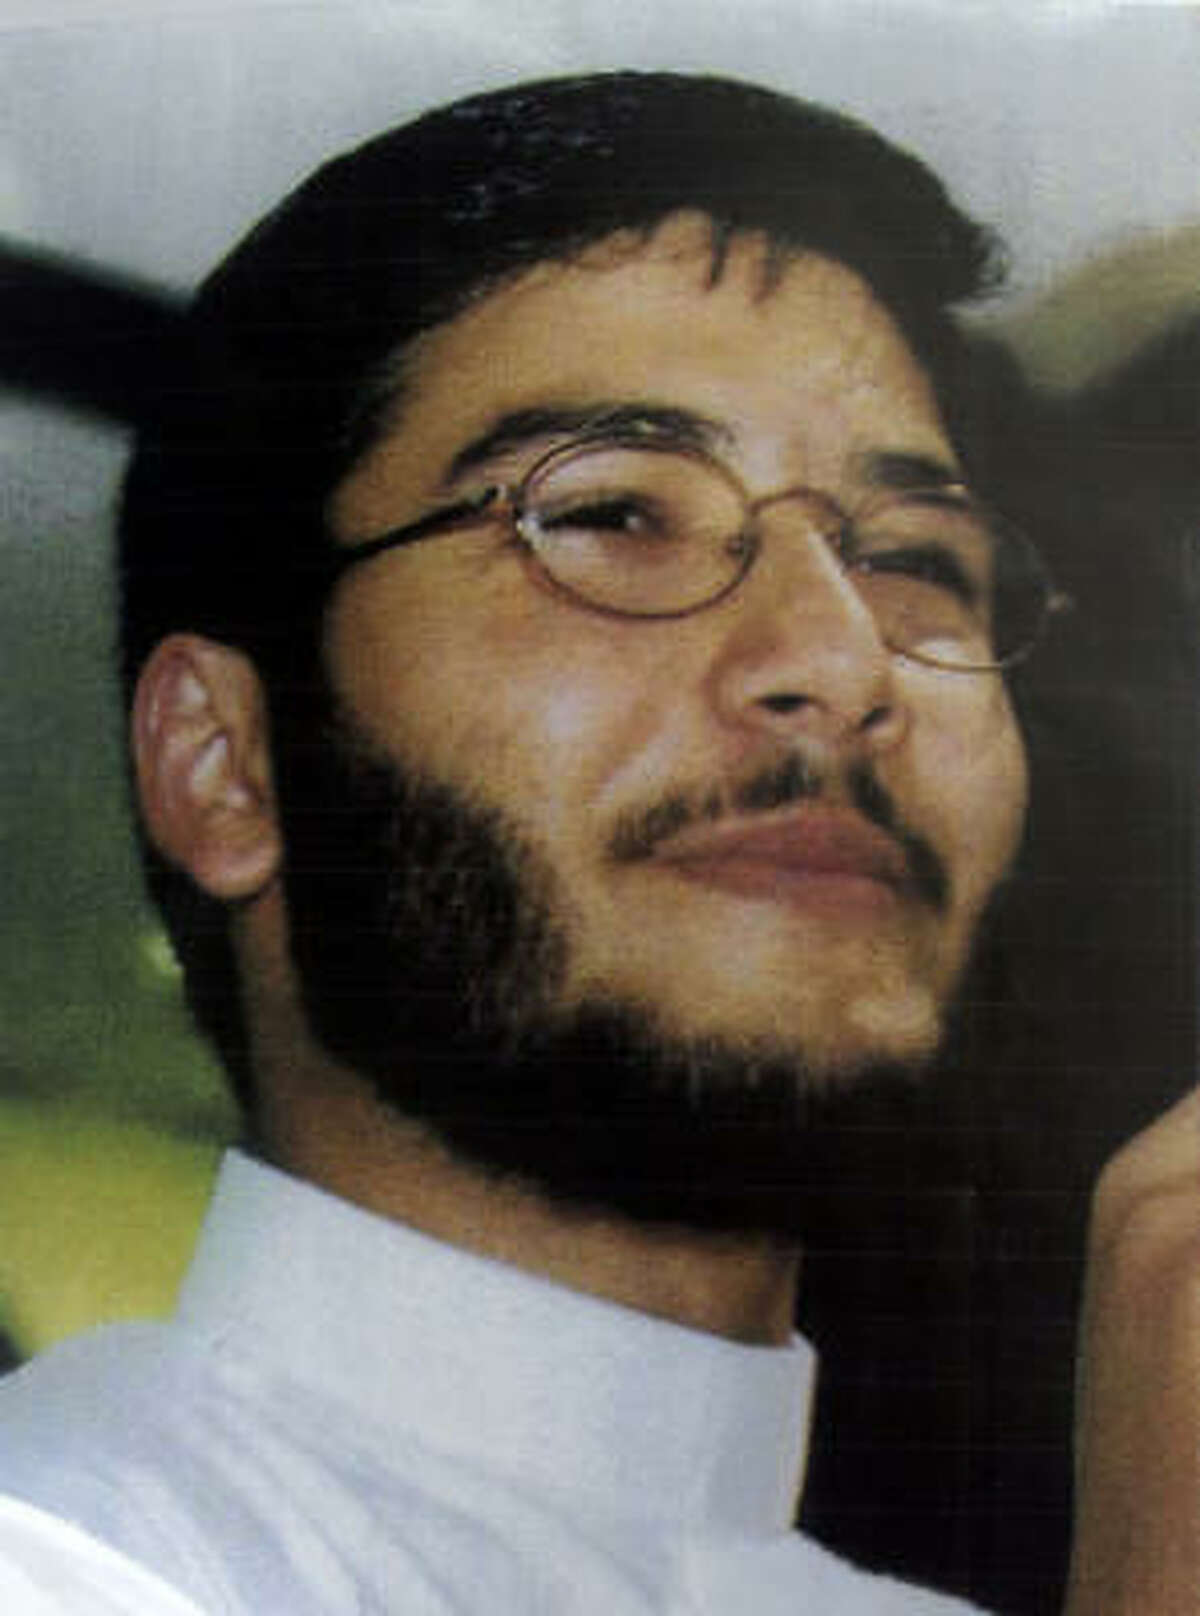 Ahmed Omar Abu Ali joined al-Qaida after traveling to Saudi Arabia to attend college in 2002.